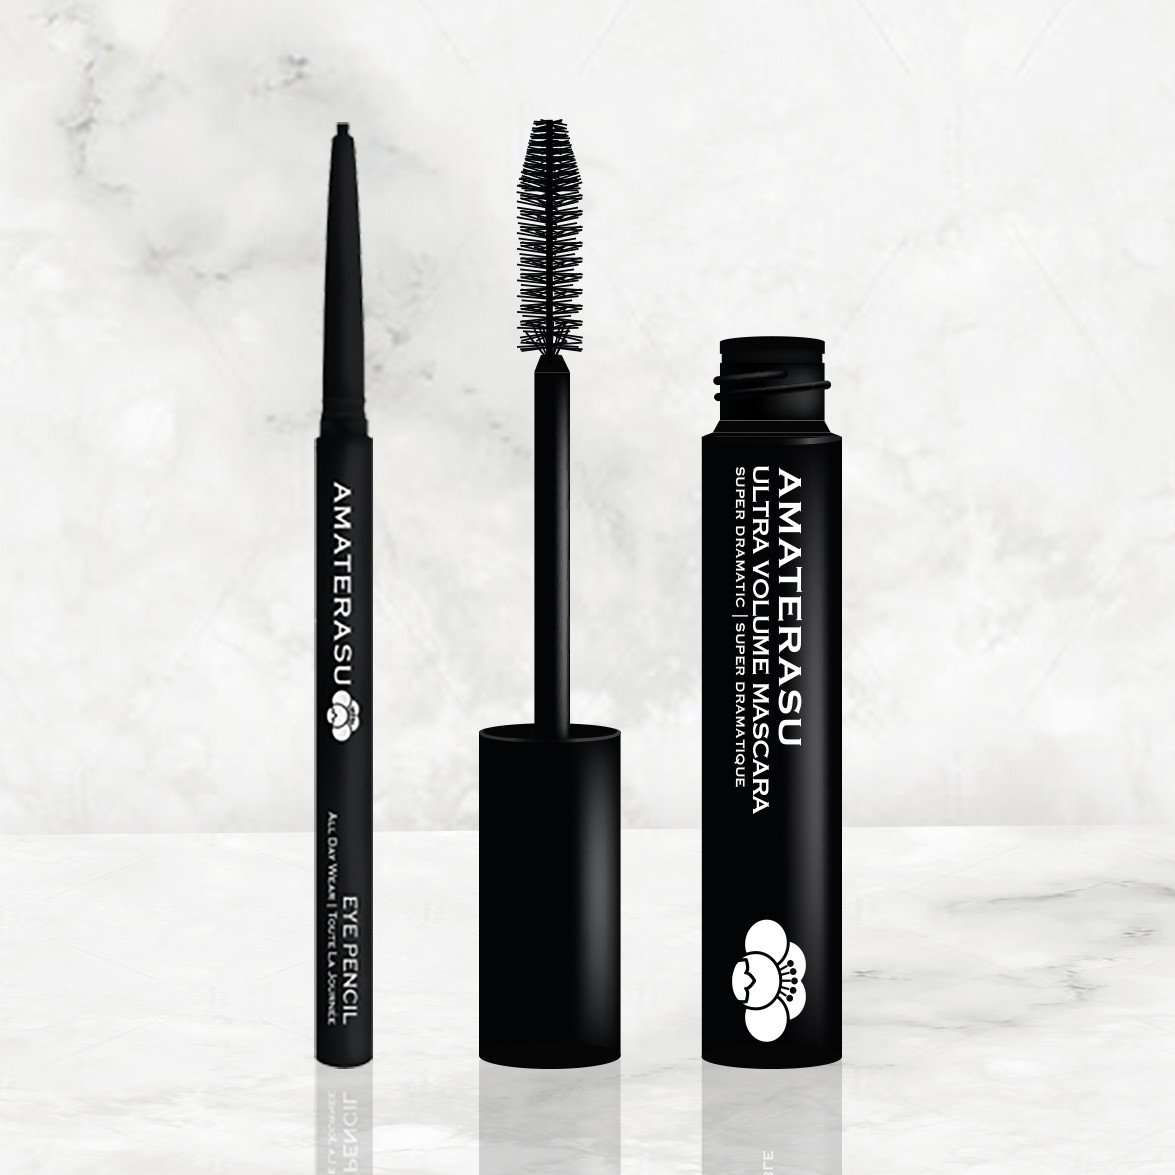 AMATERASU EYE PENCIL every day look, or smouldering, smokey eyes, our Eye Pencil is your ultimate tool.